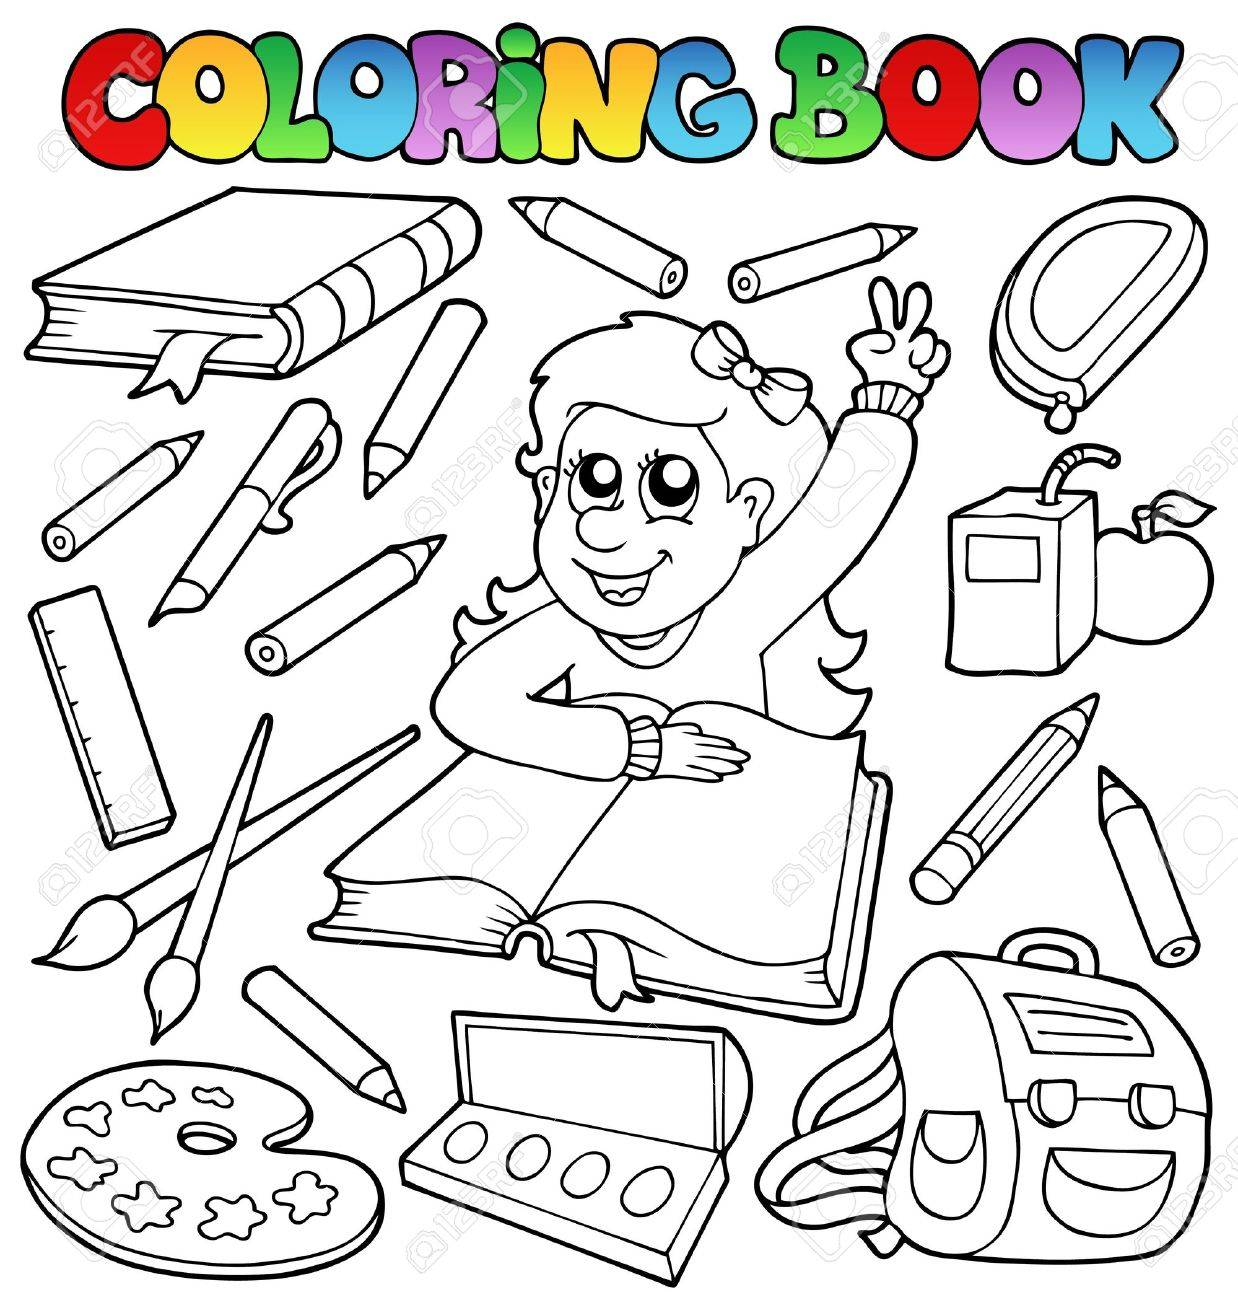 Coloring book school - Coloring Book School Topic Stock Vector 10354159